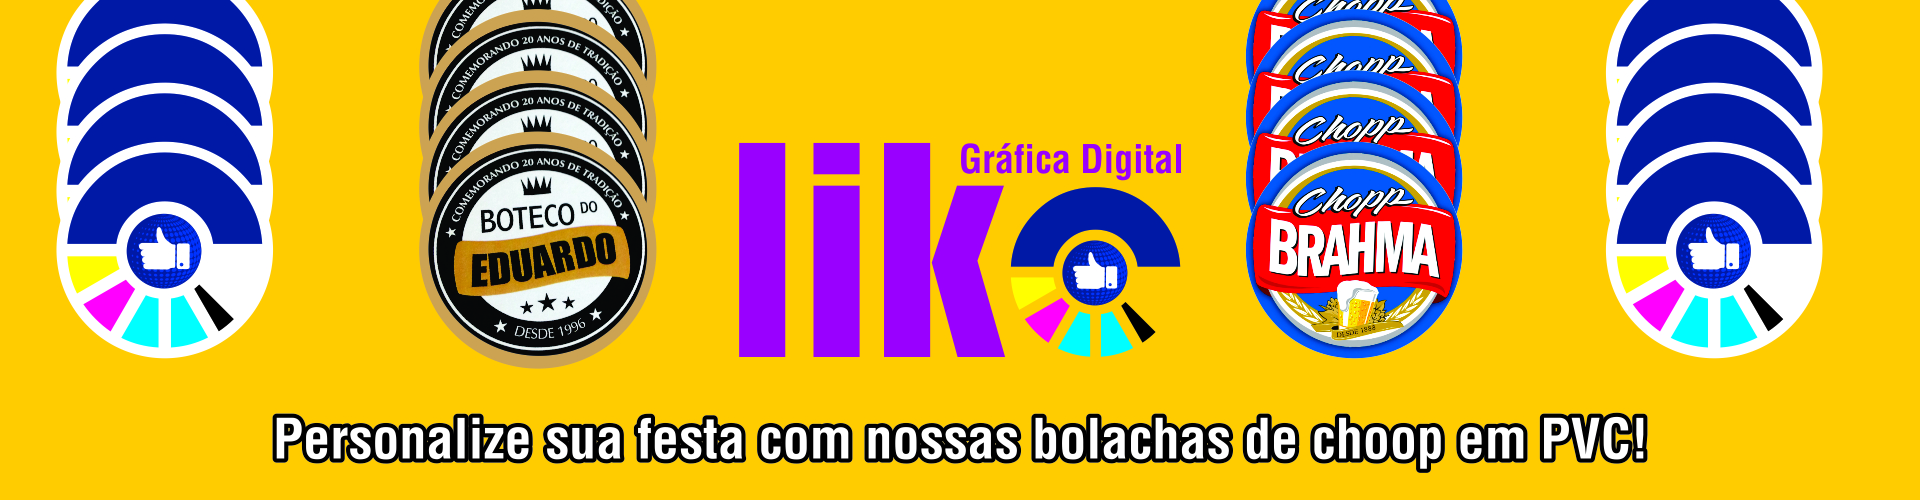 Like Gráfica Digital